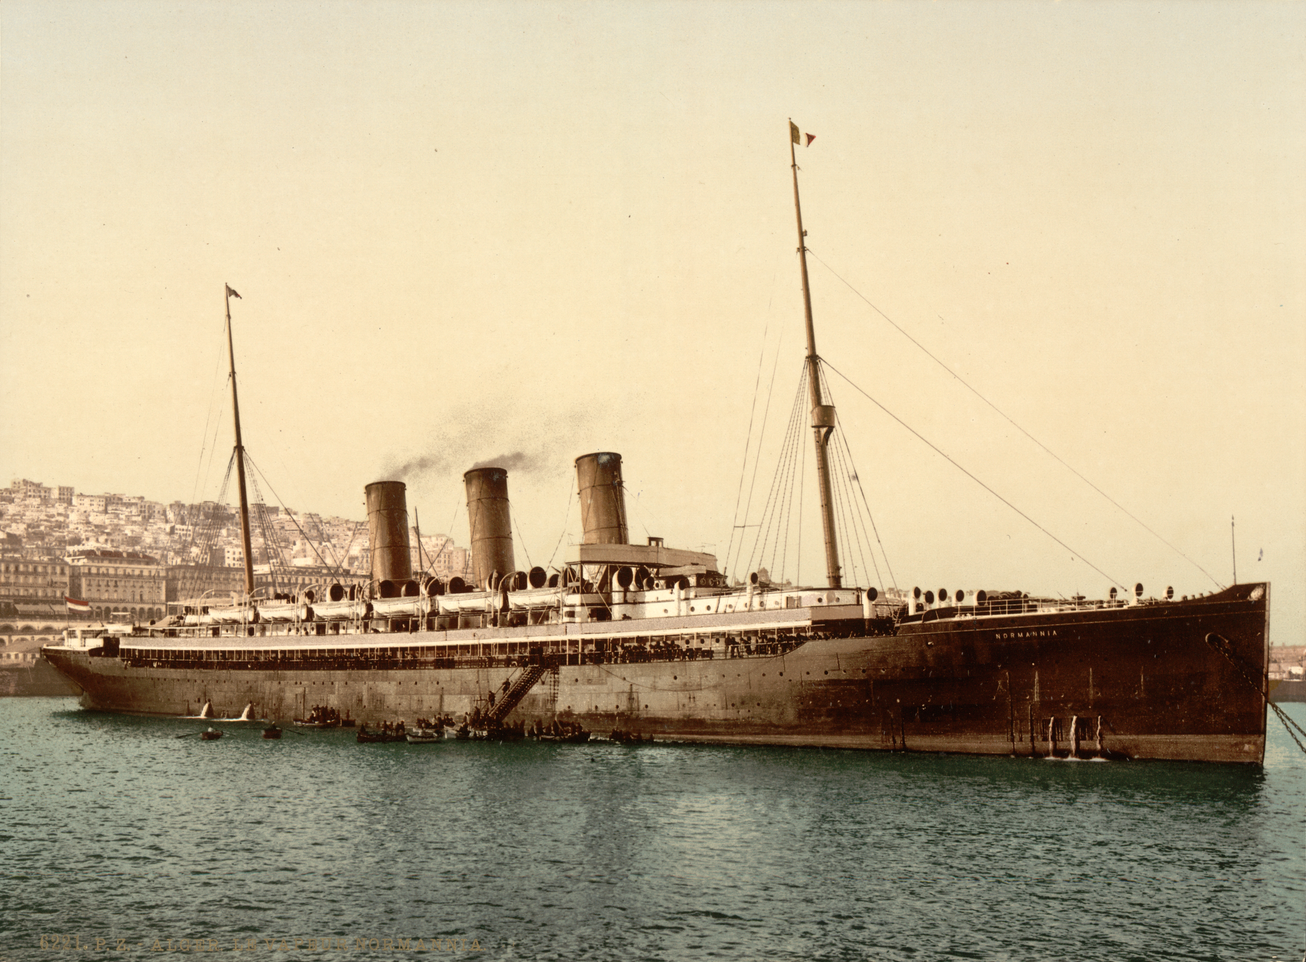 File:Steamship Normannia.png.